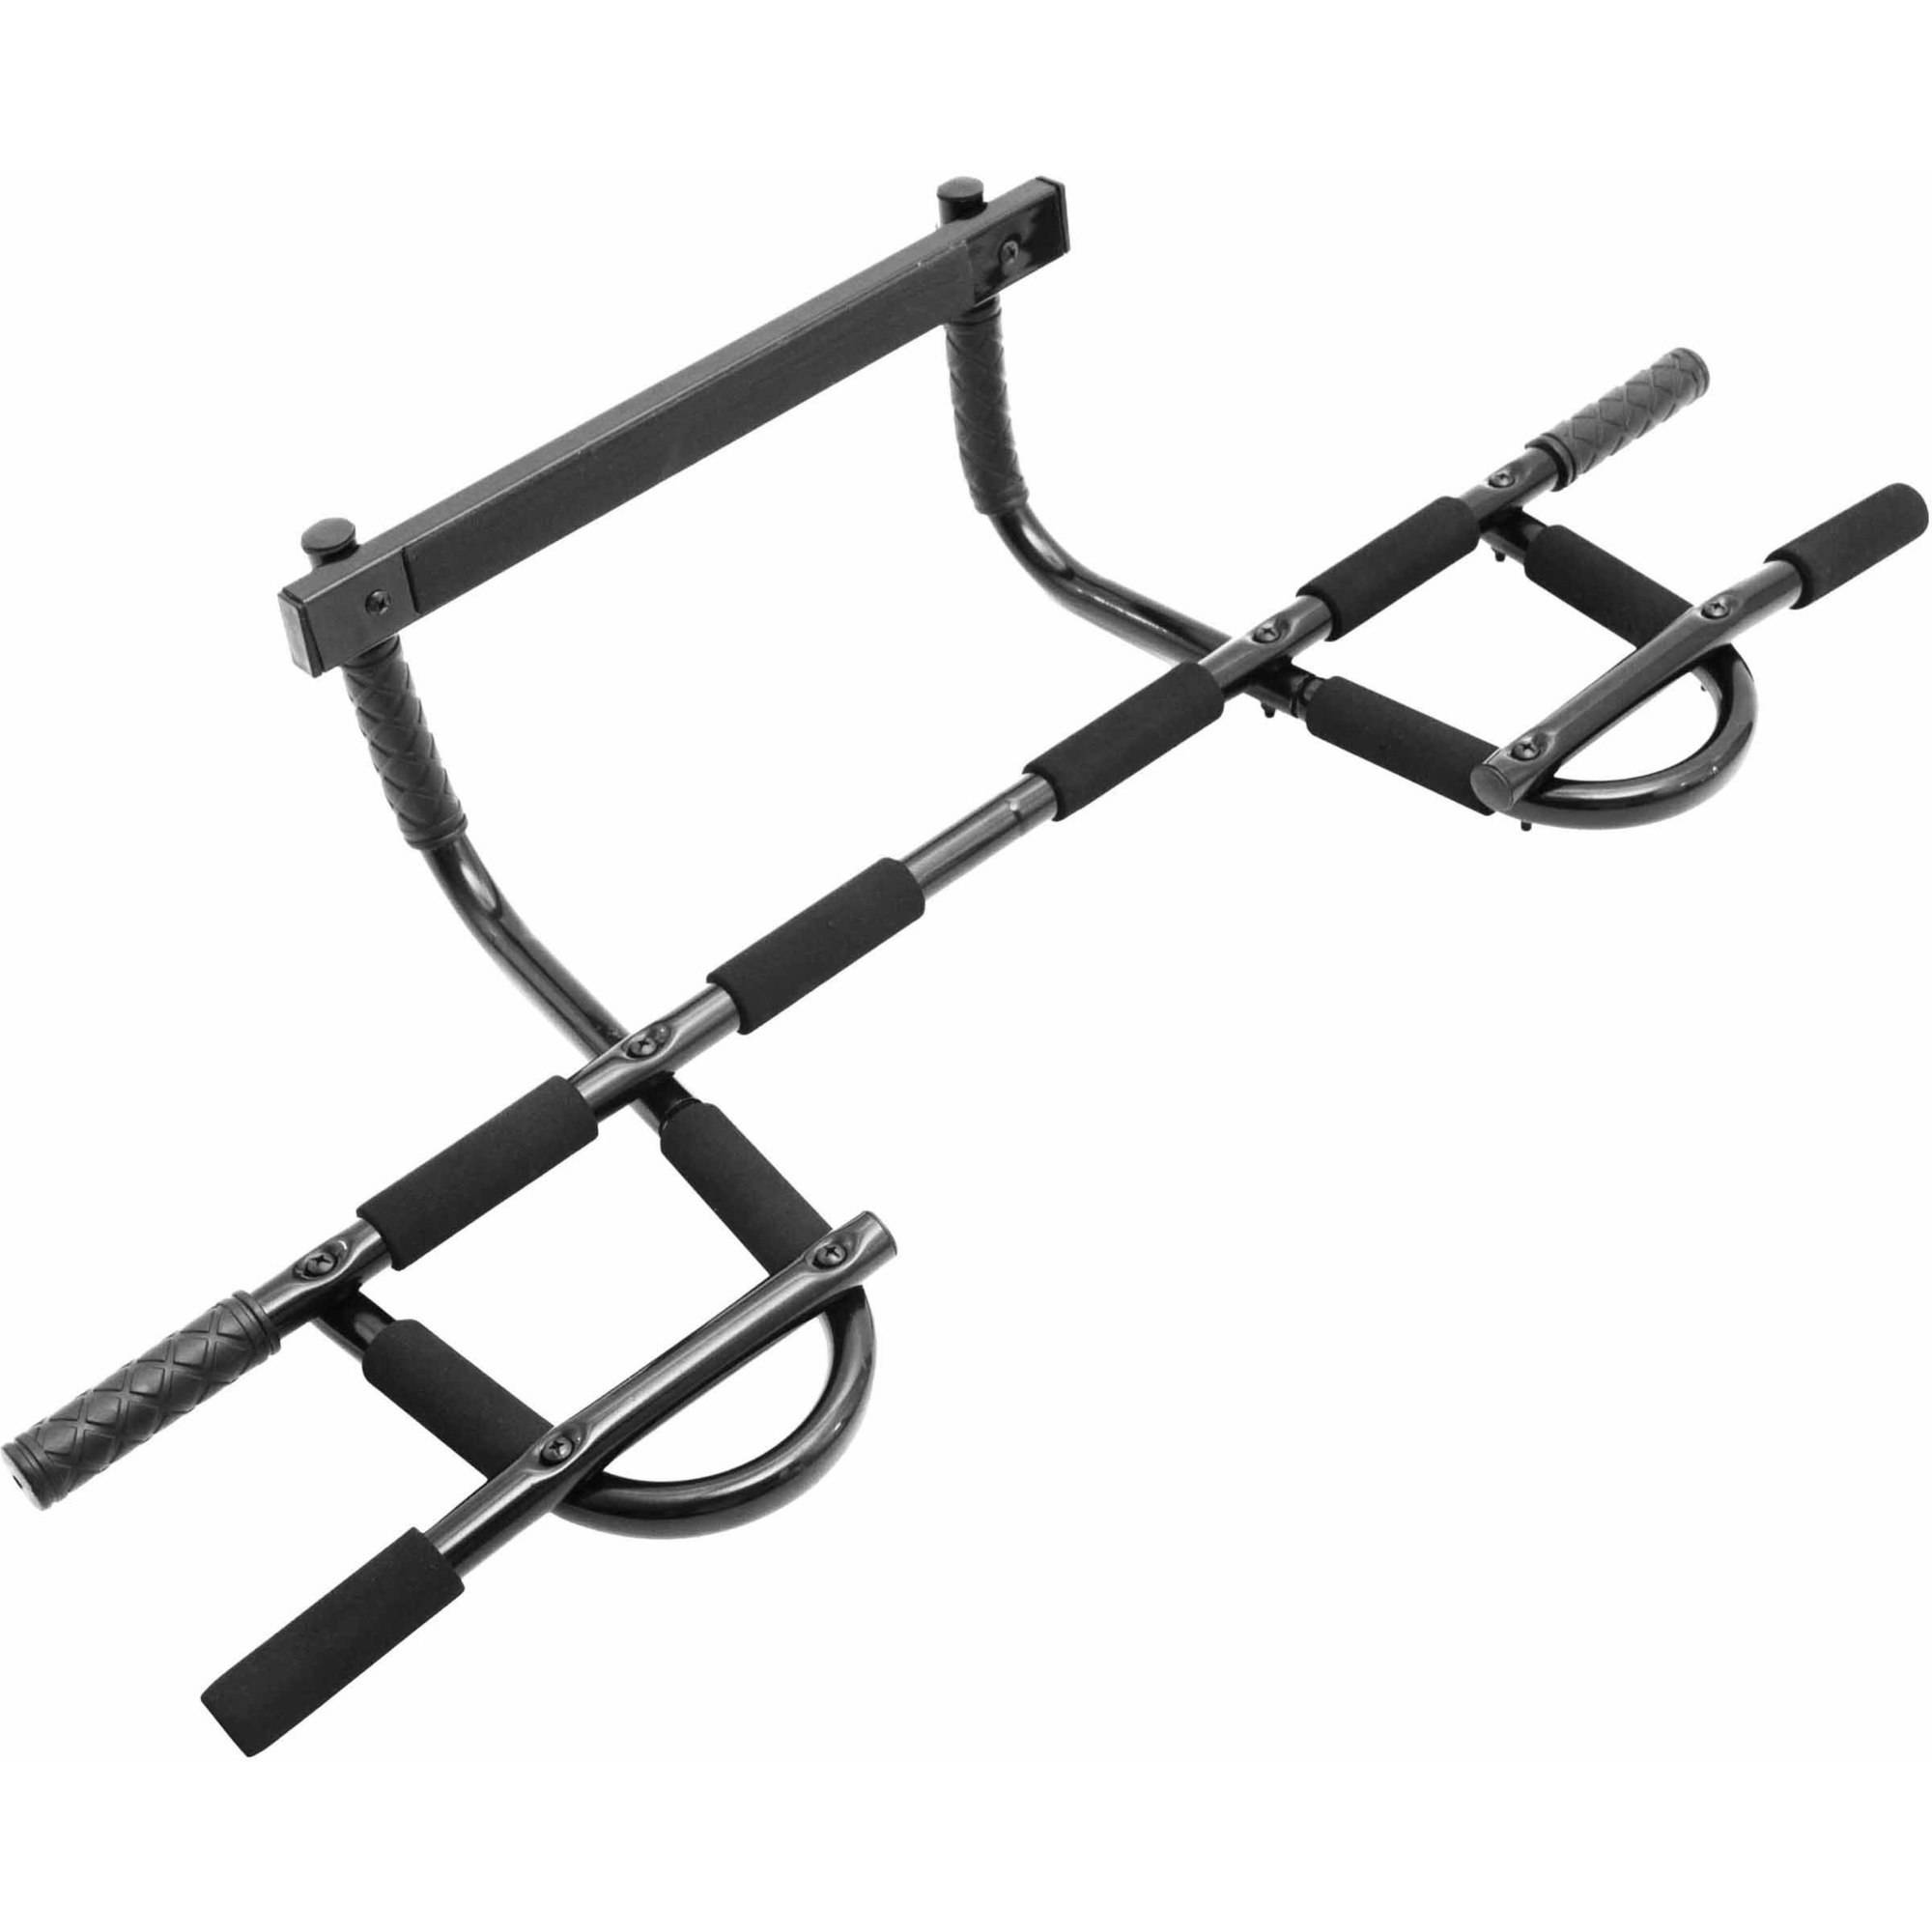 bay grips suspension up bar san area lifeline frame chin pull store buy power fitness sf francisco bars door